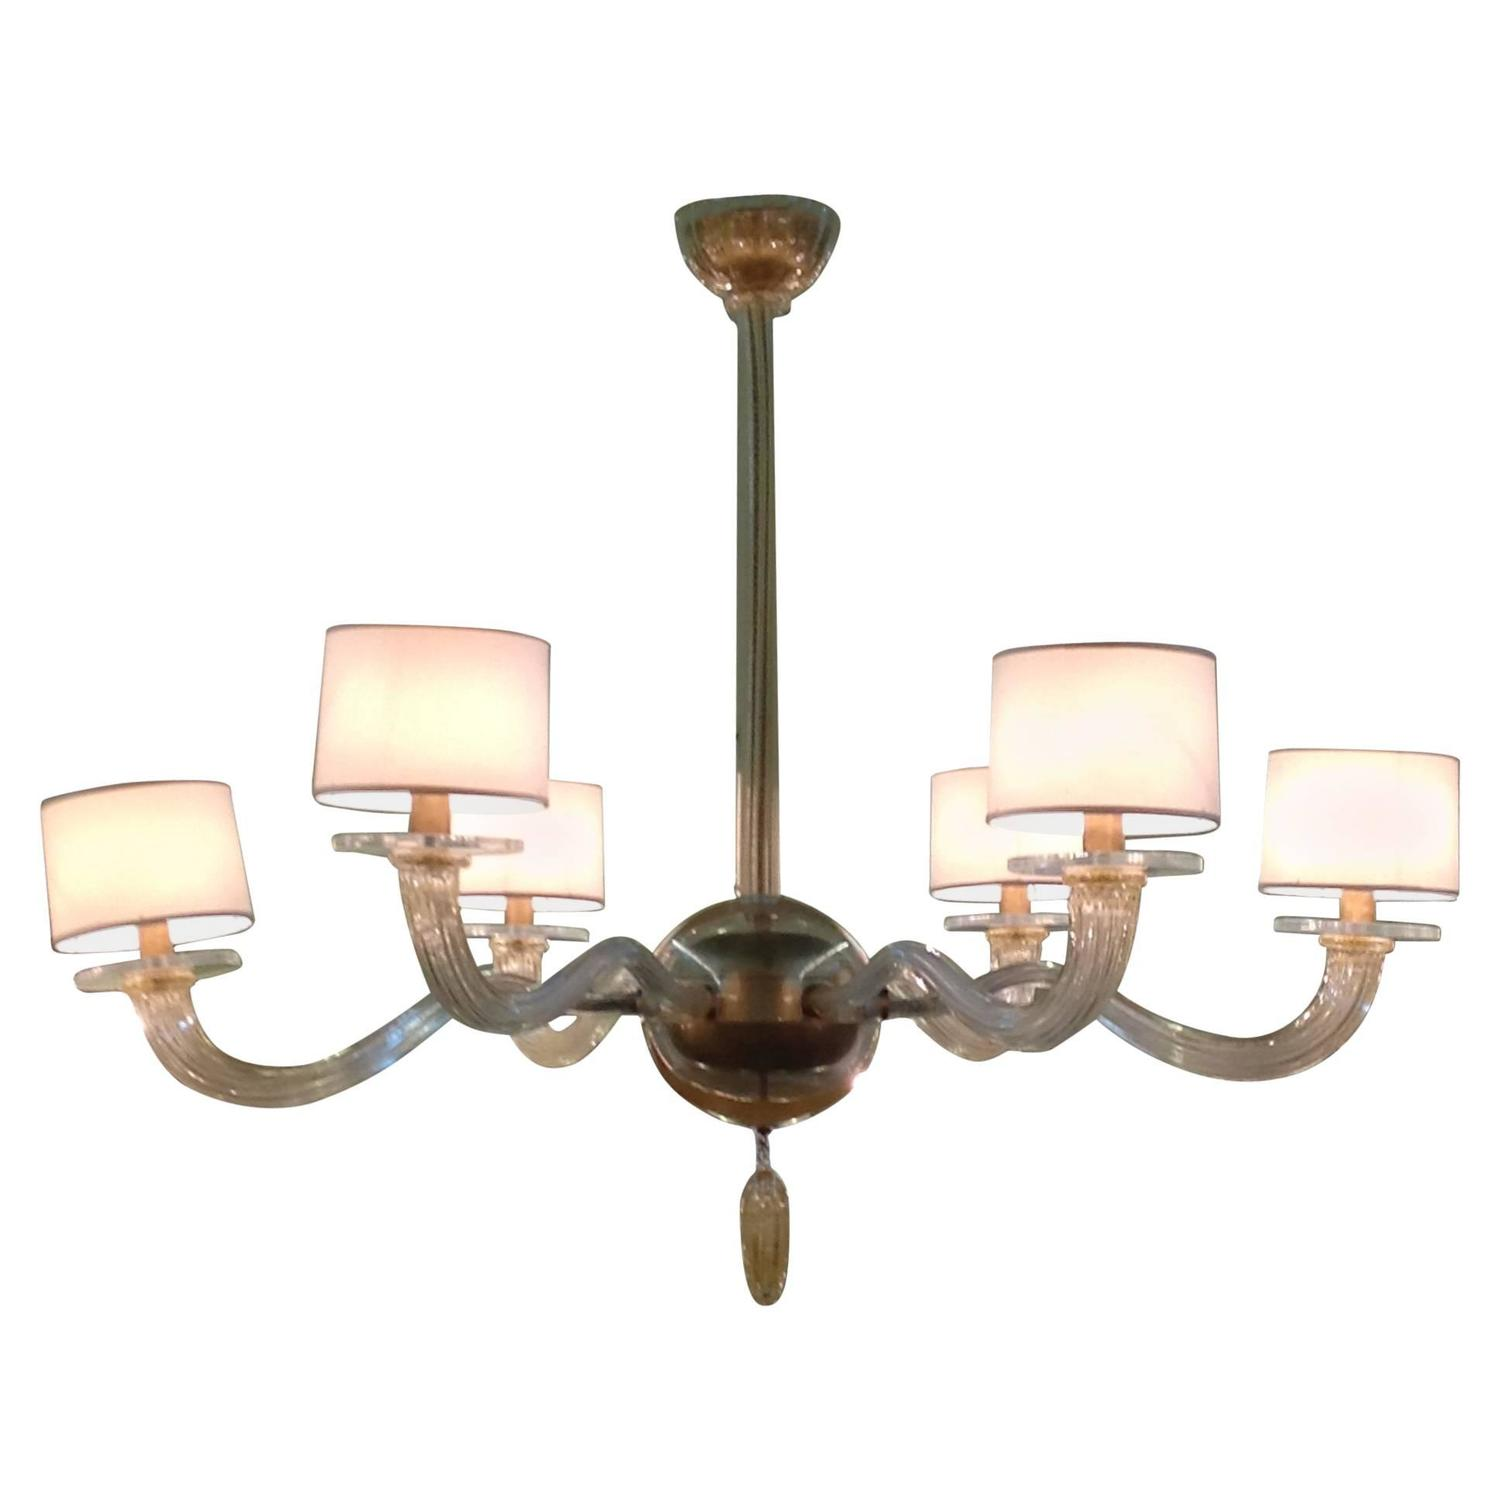 Barbara Barry For Baker Signature Six Arm Murano Chandelier At 1stdibs